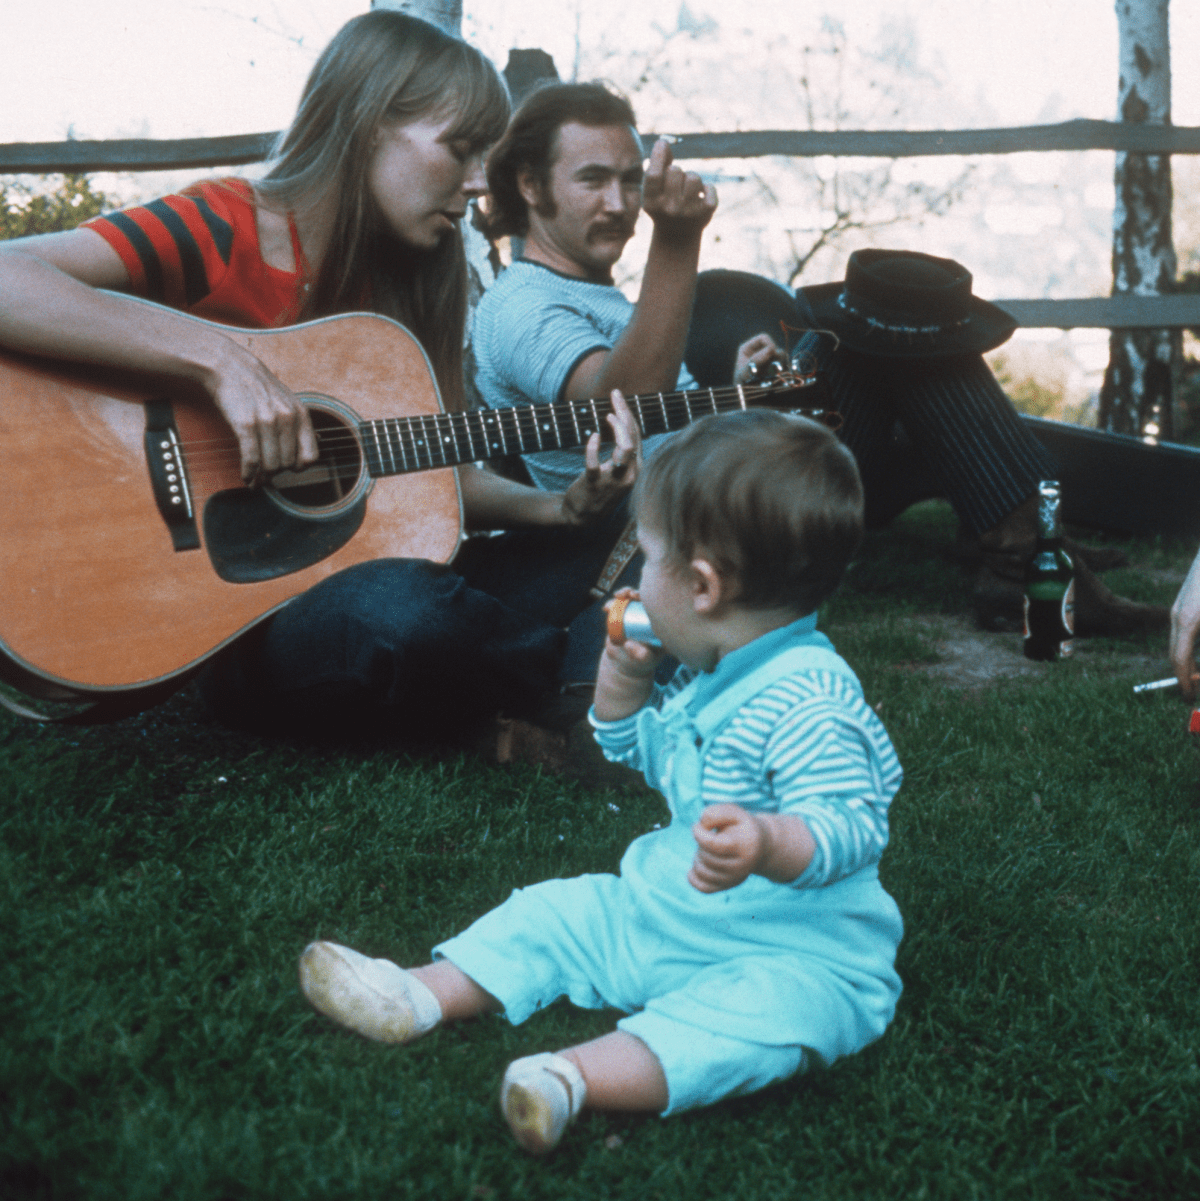 Joni Mitchell, David Crosby, and Eric Clapton at Mama Cass' house